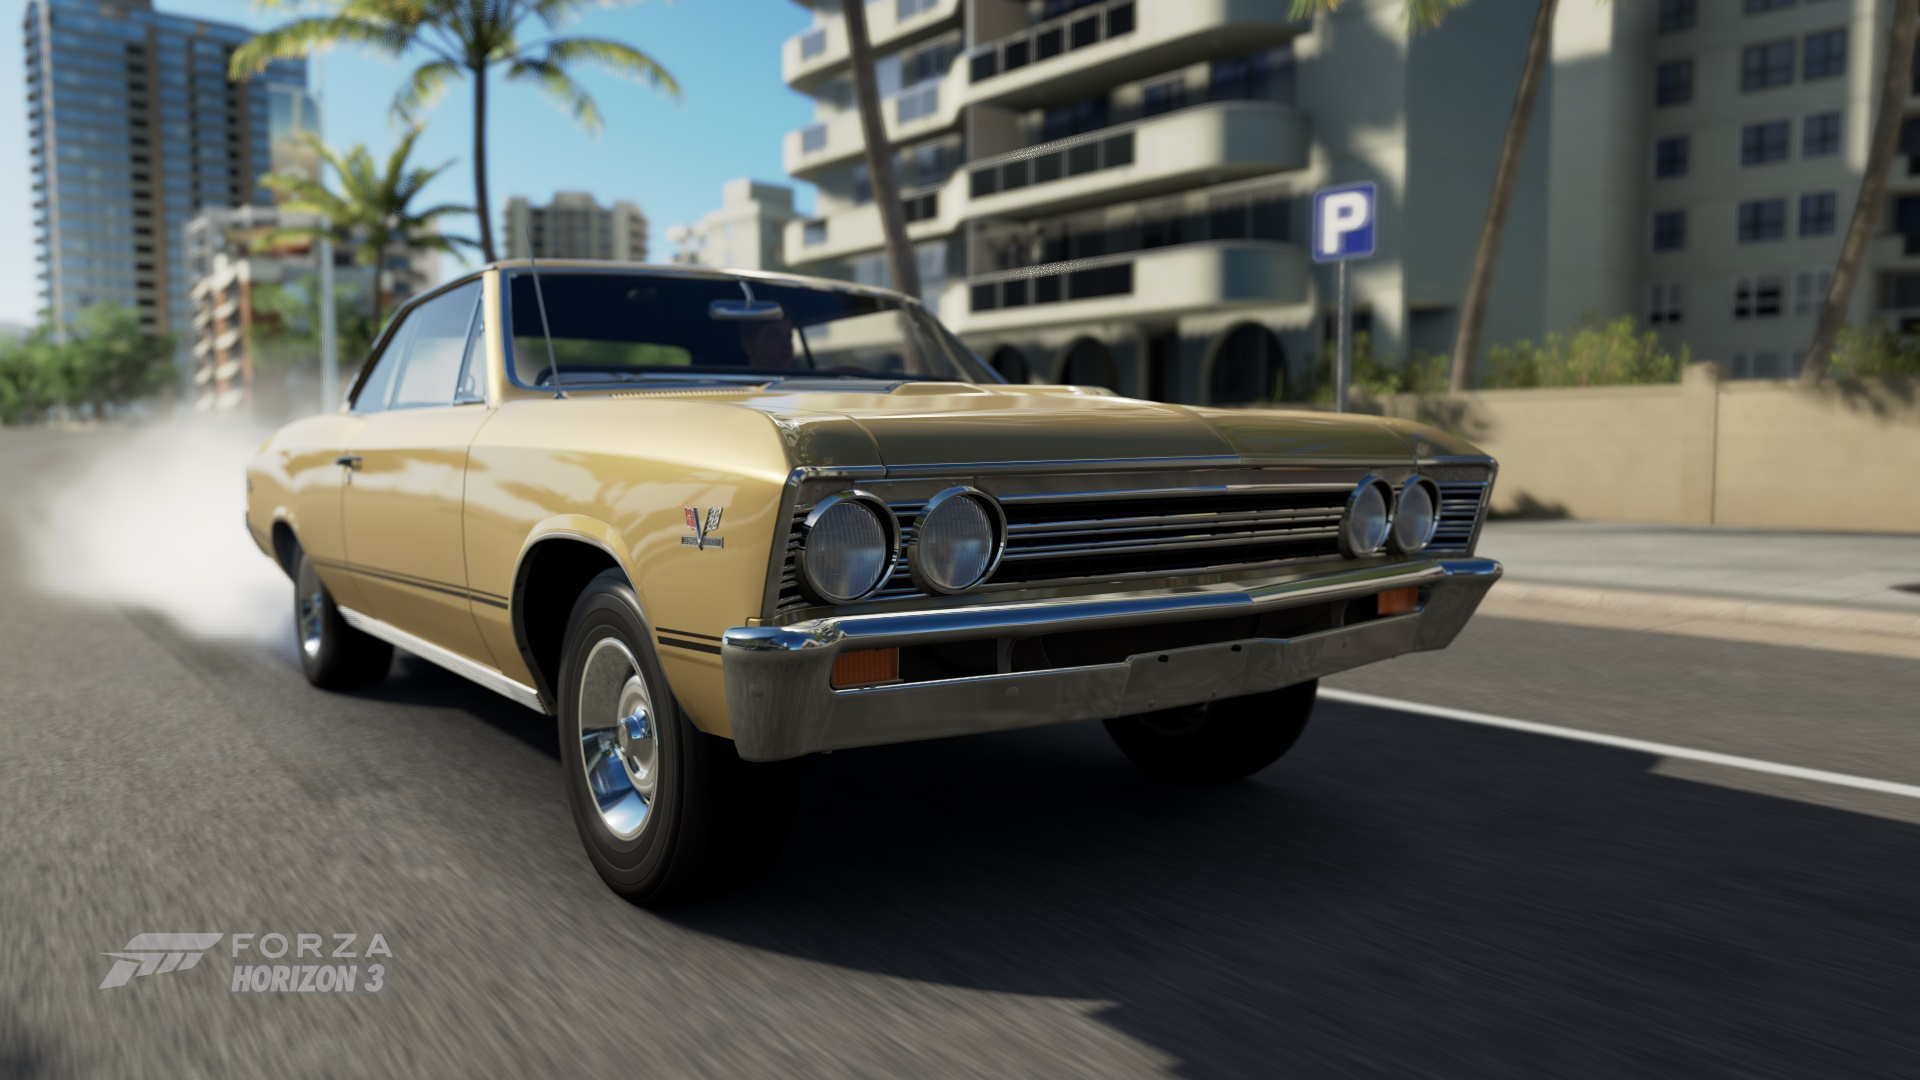 Forza Horizon 3 Cars 1966 Chevy Impala Forum 1967 Chevrolet Chevelle Super Sport 396 Photo By C4pt41n Sl0w